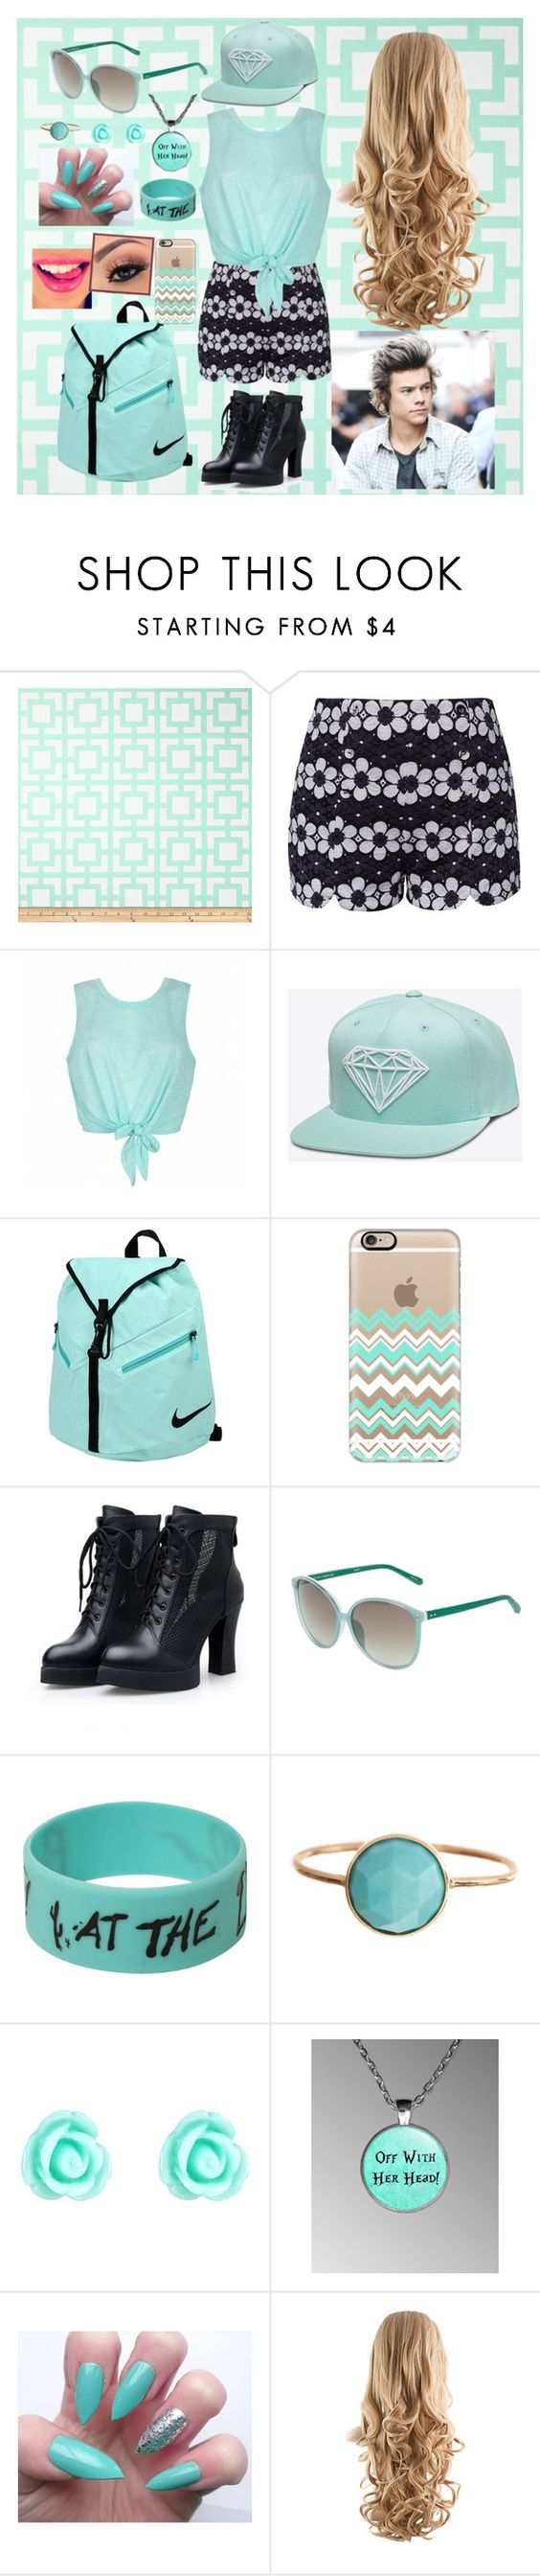 """School W/ Harry Styles"" by britishgirl98 ❤ liked on Polyvore featuring Ally Fashion, NIKE, Casetify, Linda Farrow, Ariel Gordon and Monsoon"